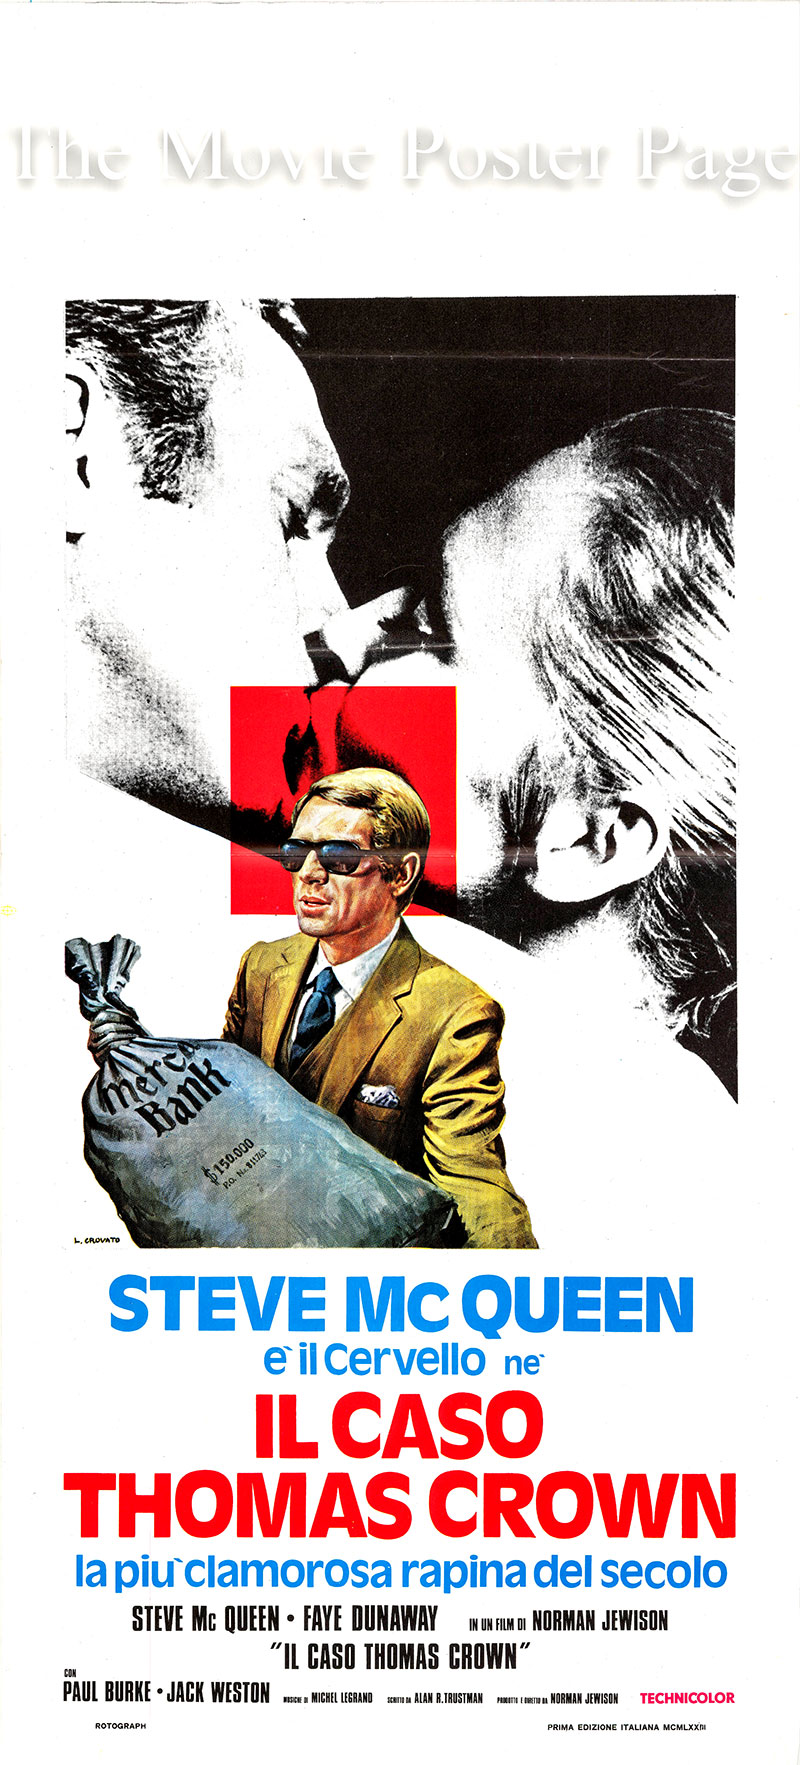 Pictured is an Italian locandina poster for the 1968 Norman Jewison film The Thomas Crown Affair starring Steve McQueen as Thomas Crown.